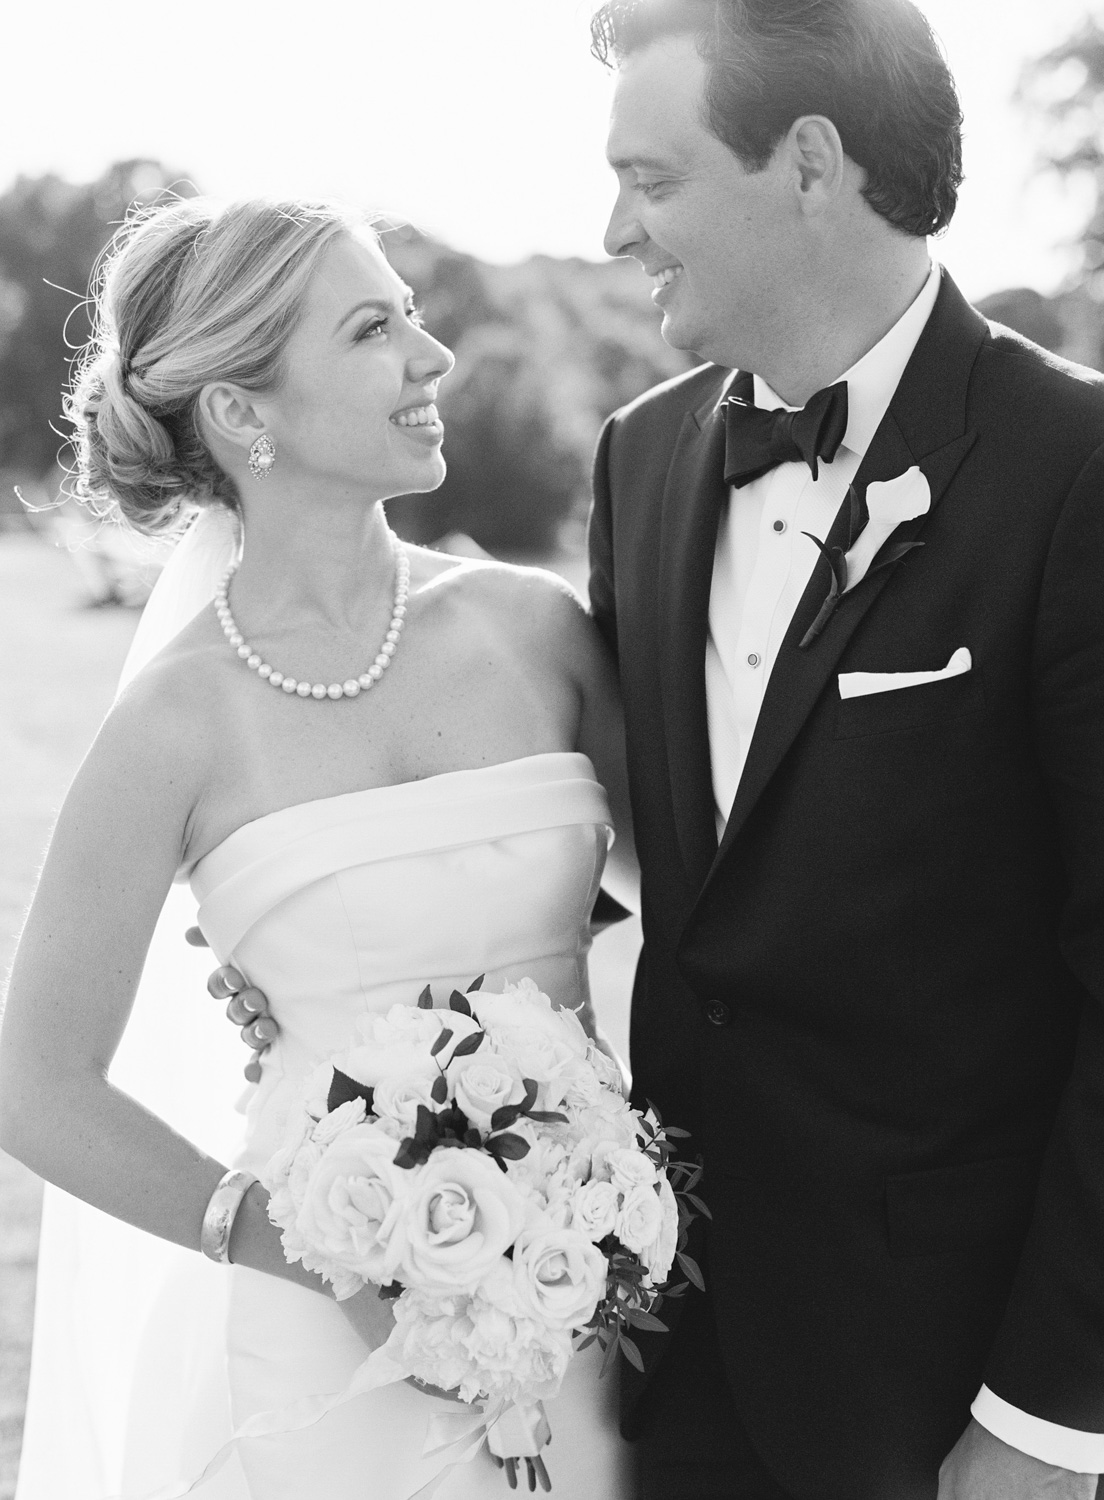 Wedding couple smiling at each other